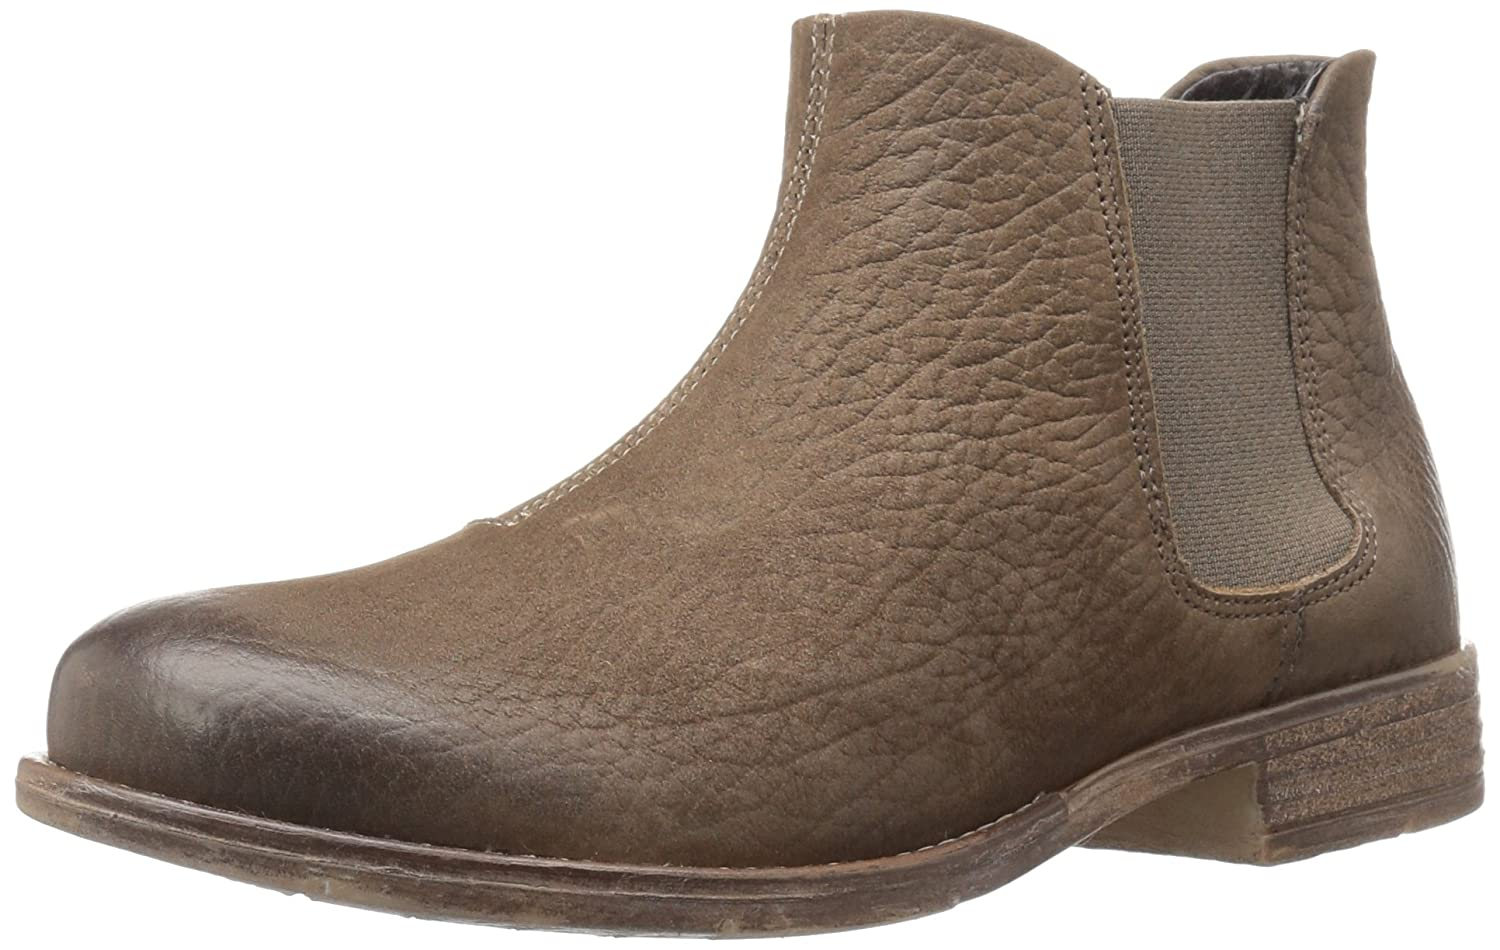 Josef Seibel Women's Sienna 05 Chelsea Boot B01CYXGK54 38 EU/7-7.5 M US|Taupe